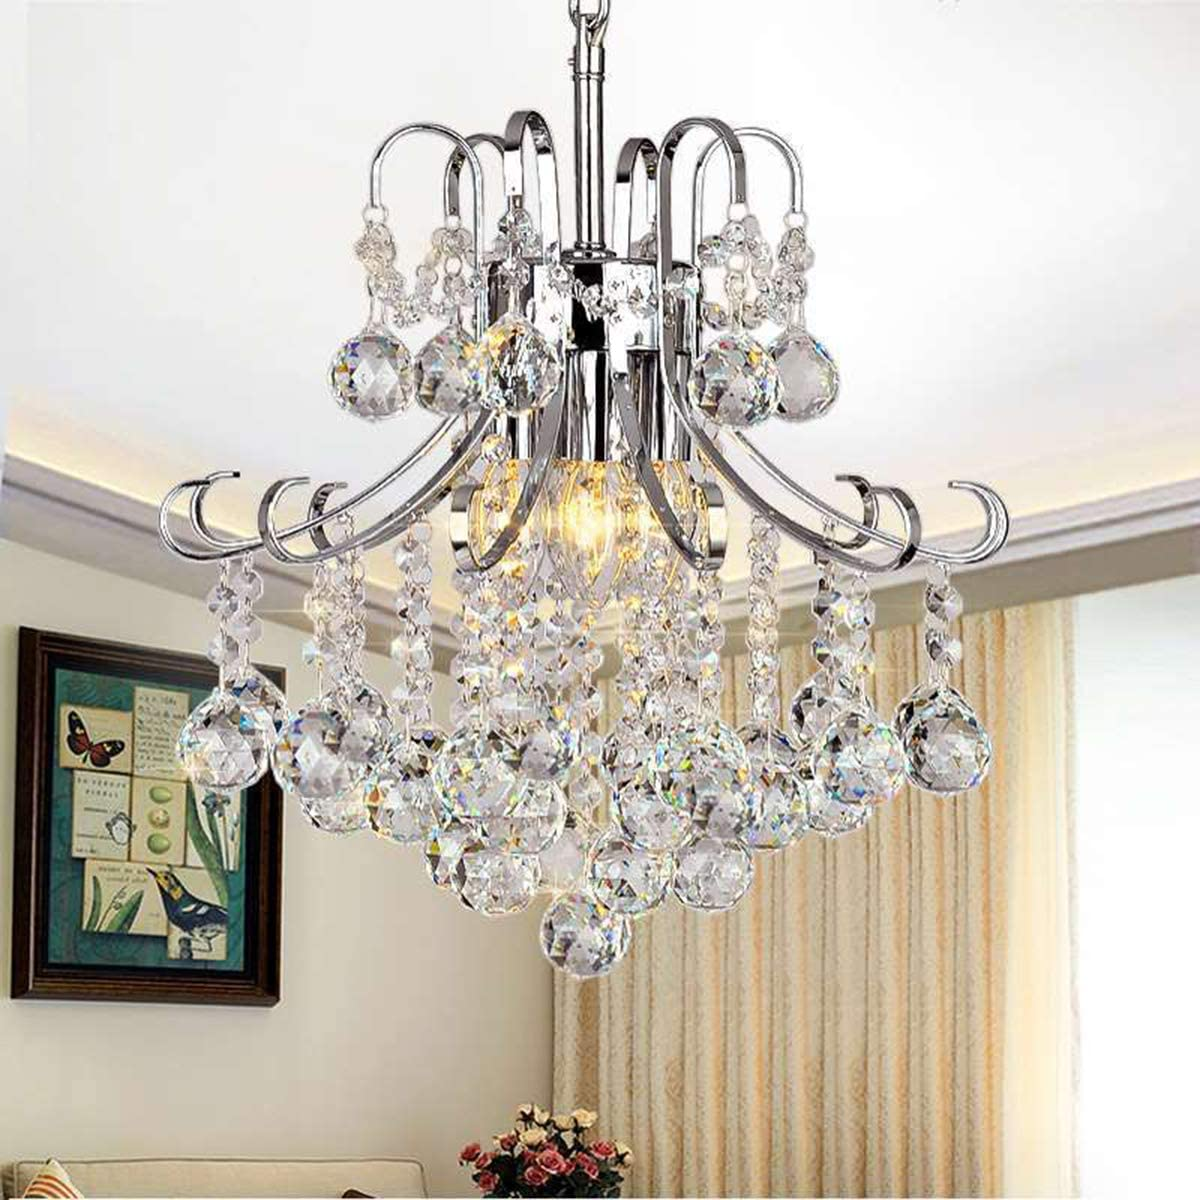 Ganeed Chandeliers,3-Light Modern Crystal Chandelier, Pendant Lighting,Flush Mount Ceiling Light Fixture for Living Room,Office,Dining Room,Bedroom,Chrome